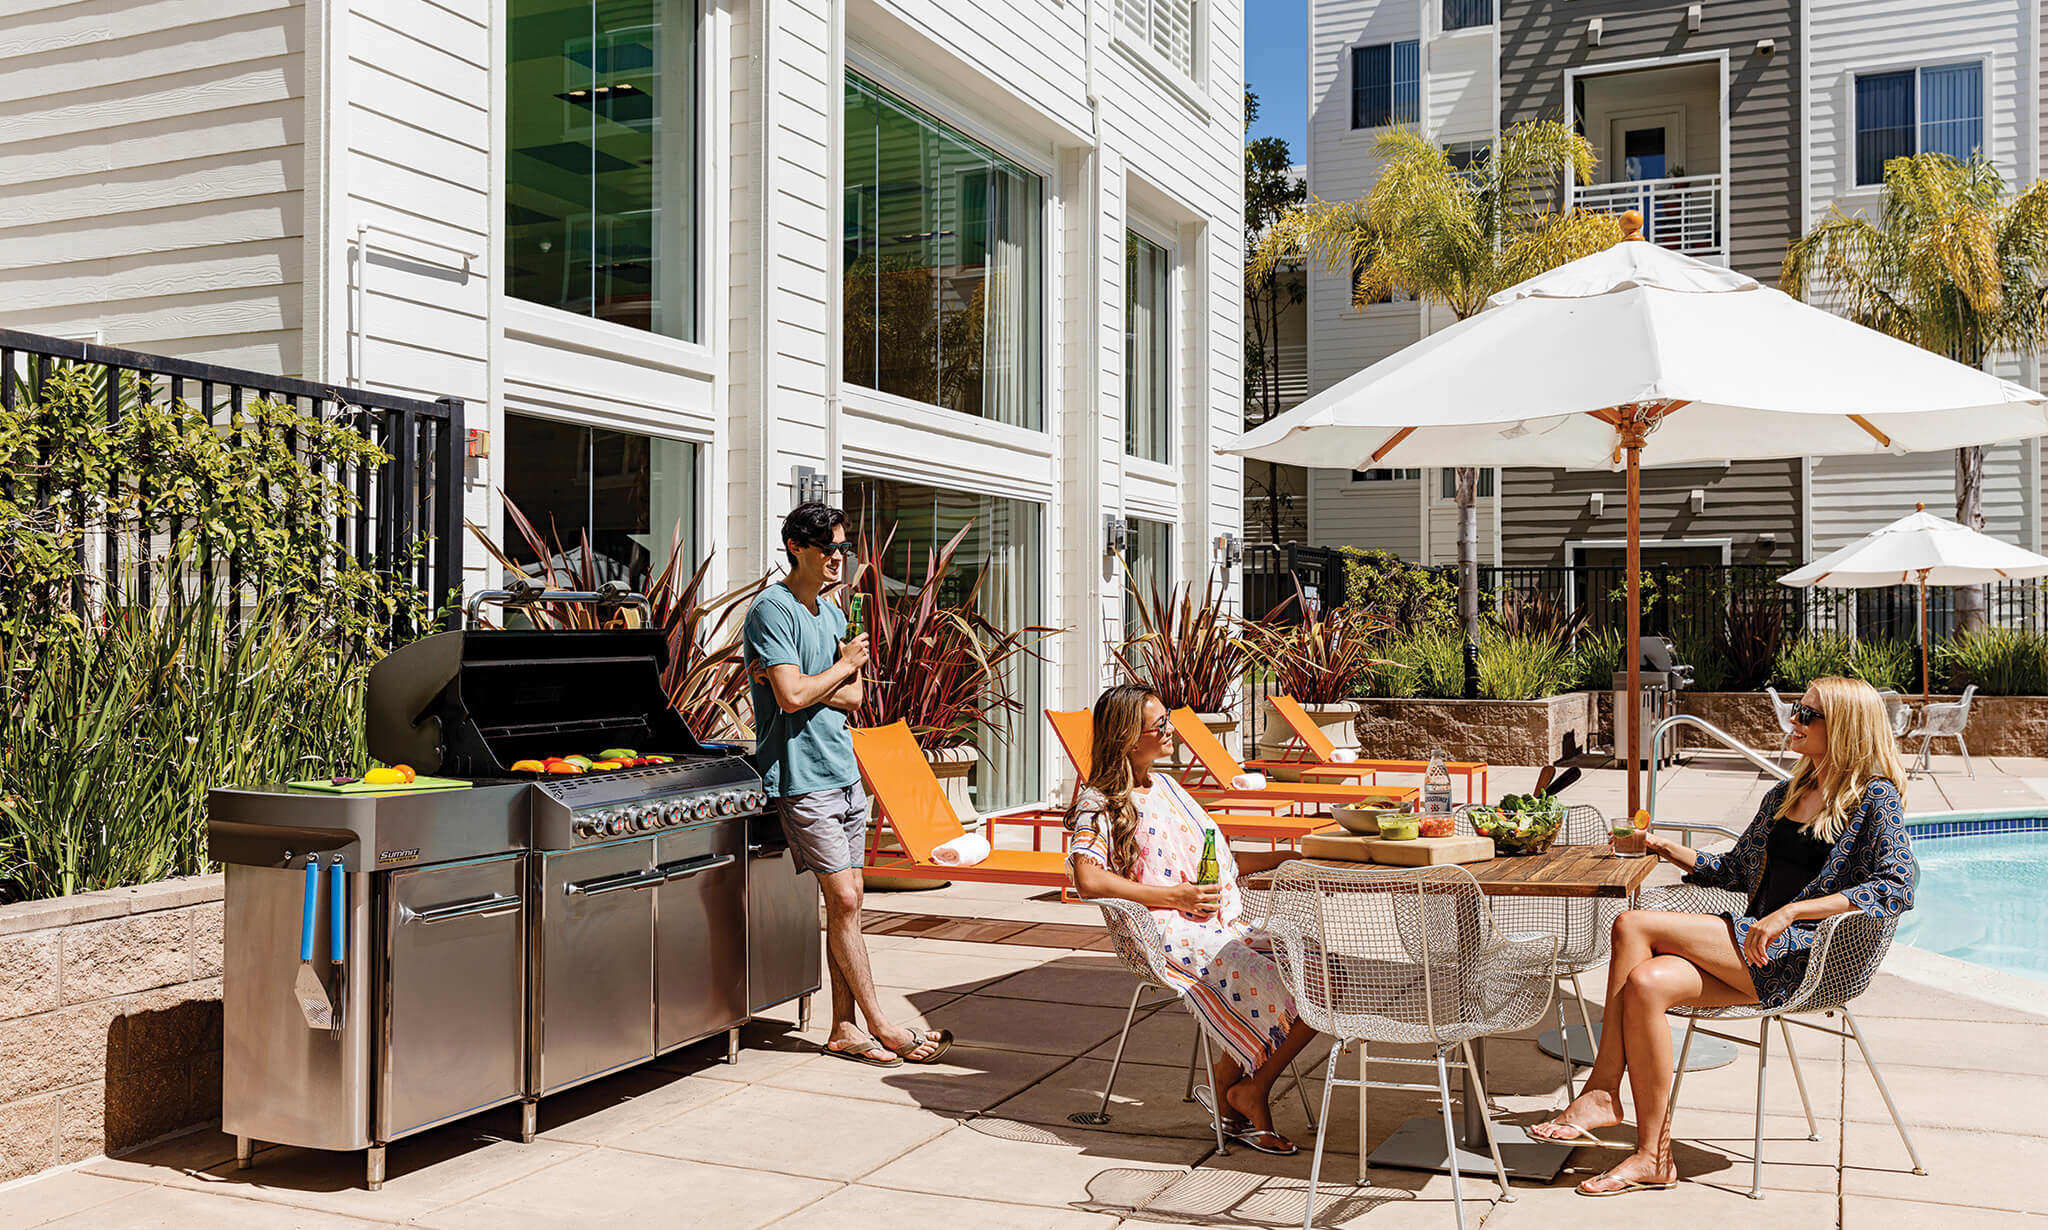 Outdoor patio with BBQ and people dining